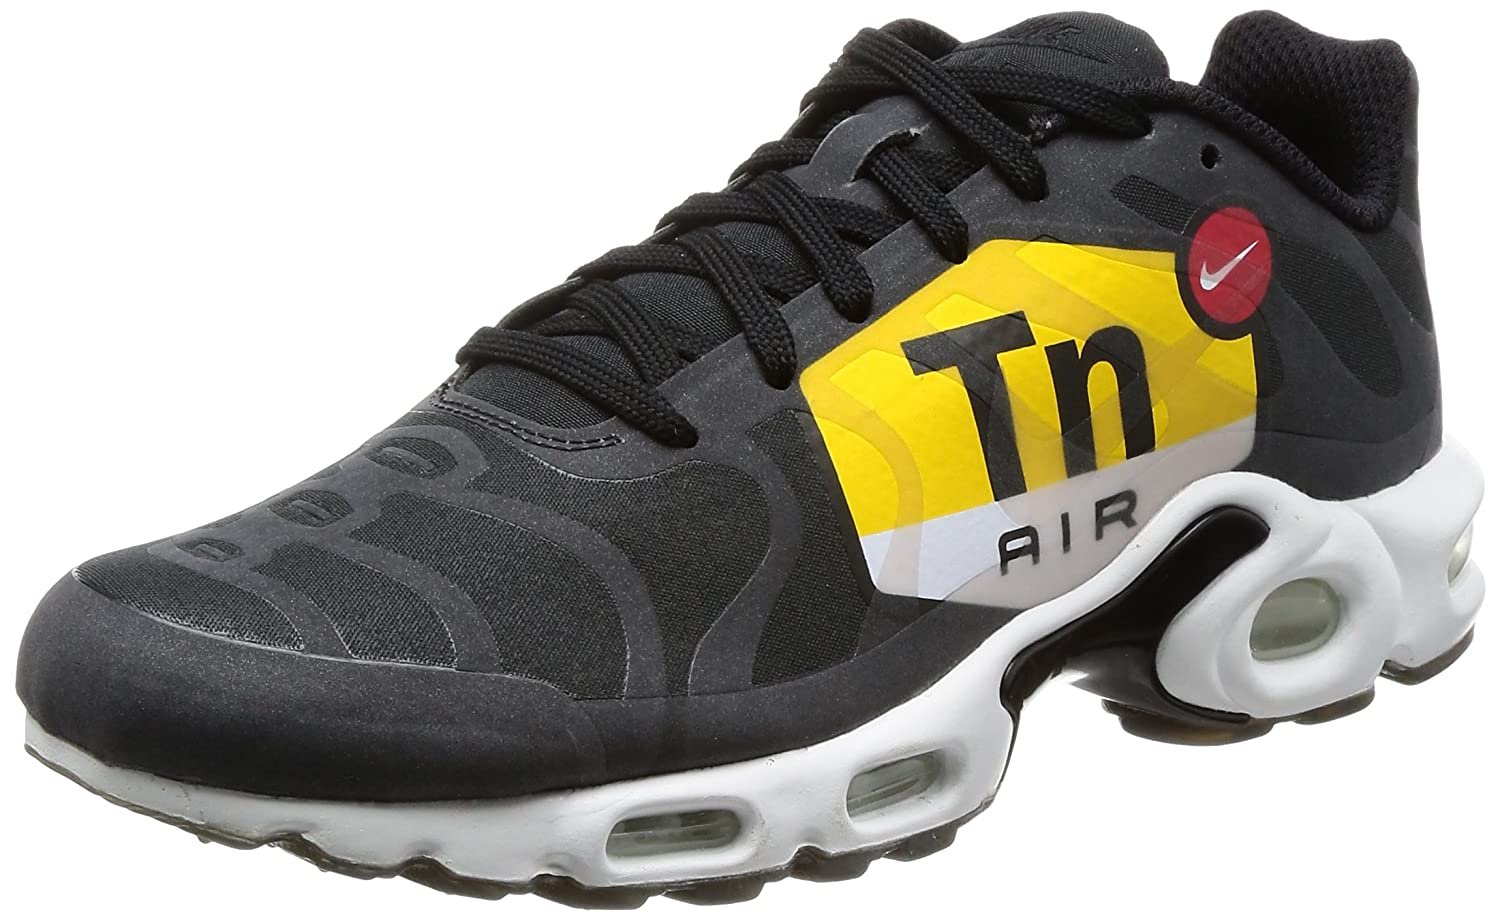 official photos ff383 31666 Amazon.com   Nike Air Max Plus NS GPX Mens Running Trainers Aj0877 Sneakers  Shoes   Athletic